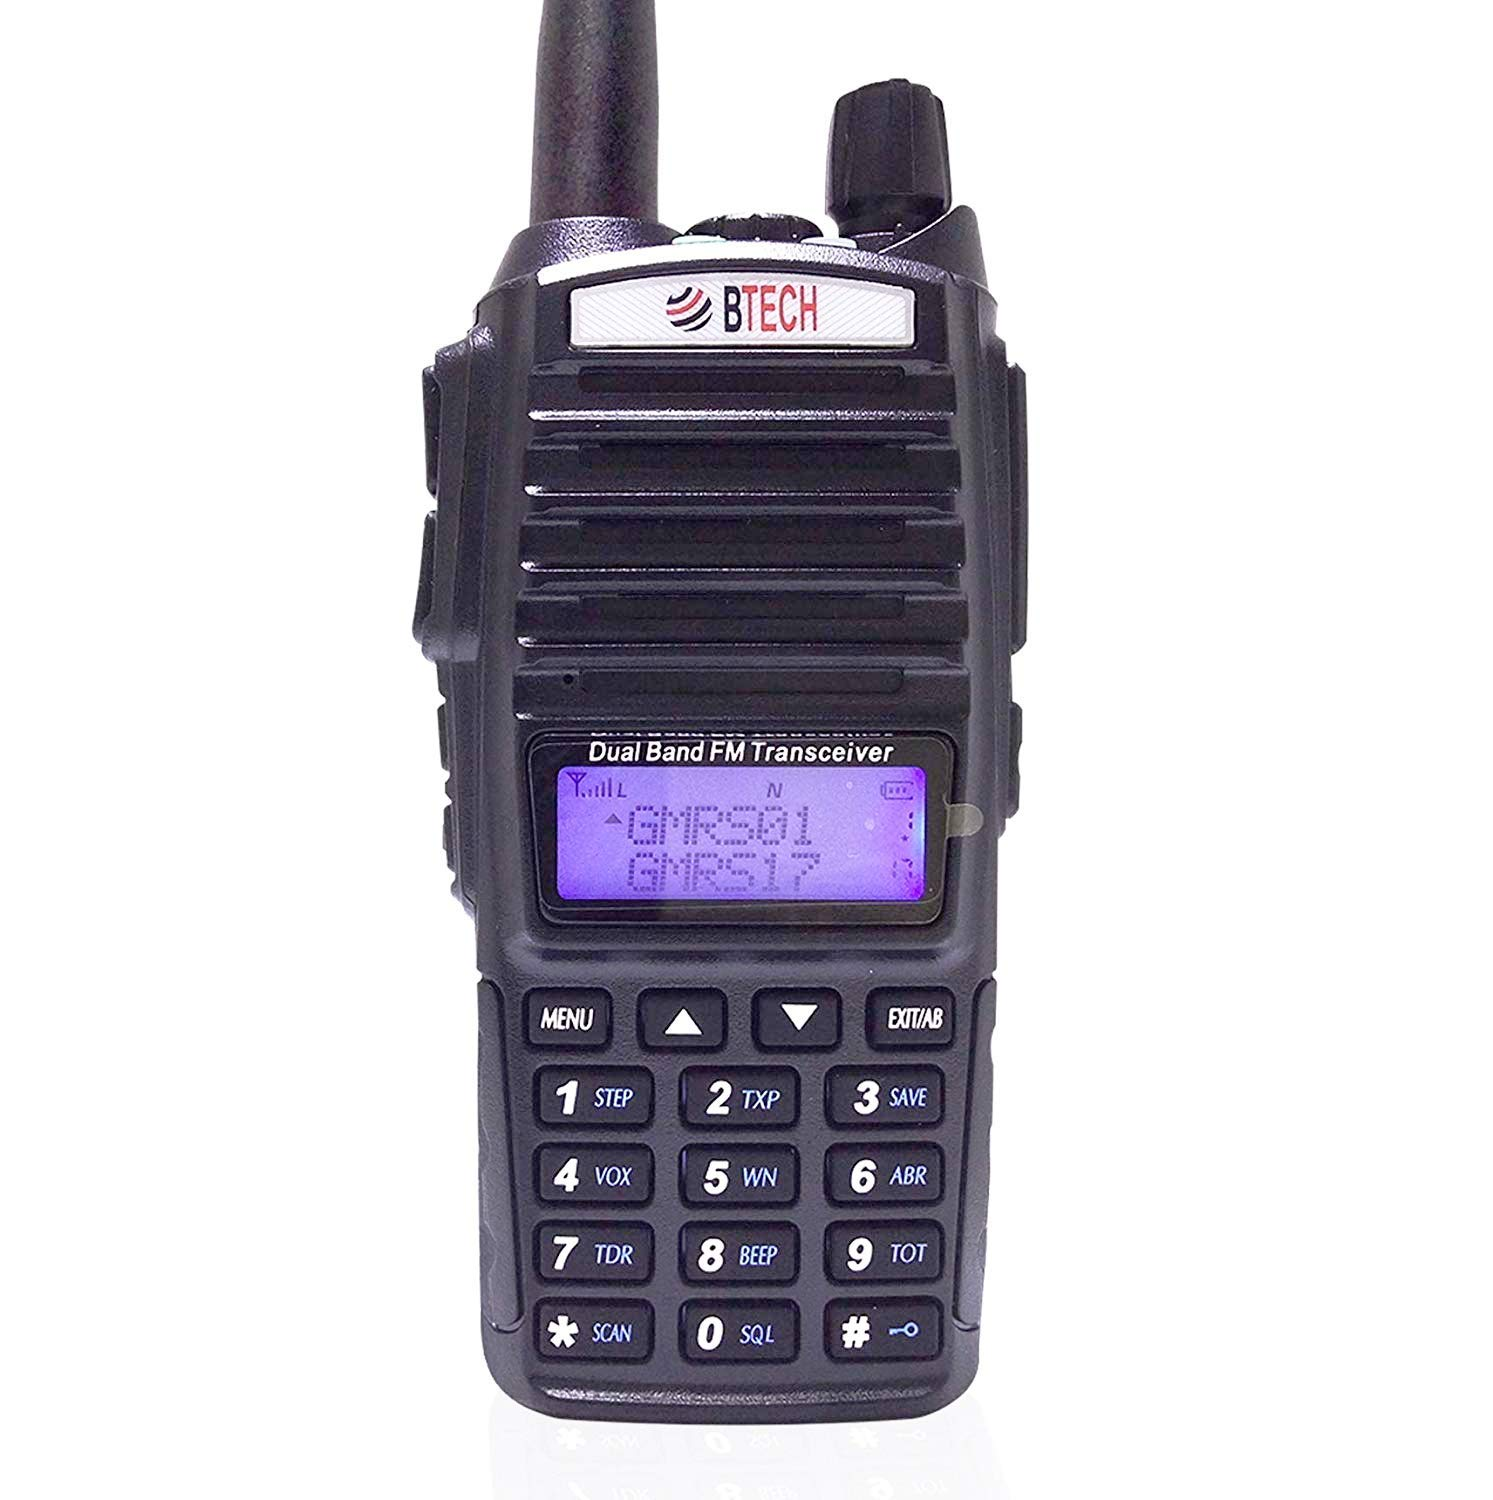 BTECH GMRS-V1 GMRS Two-Way Radio, GMRS Repeater Capable, with Dual Band Scanning Receiver (136-174.99mhz (VHF) 400-520.99mhz (UHF)) by BTECH